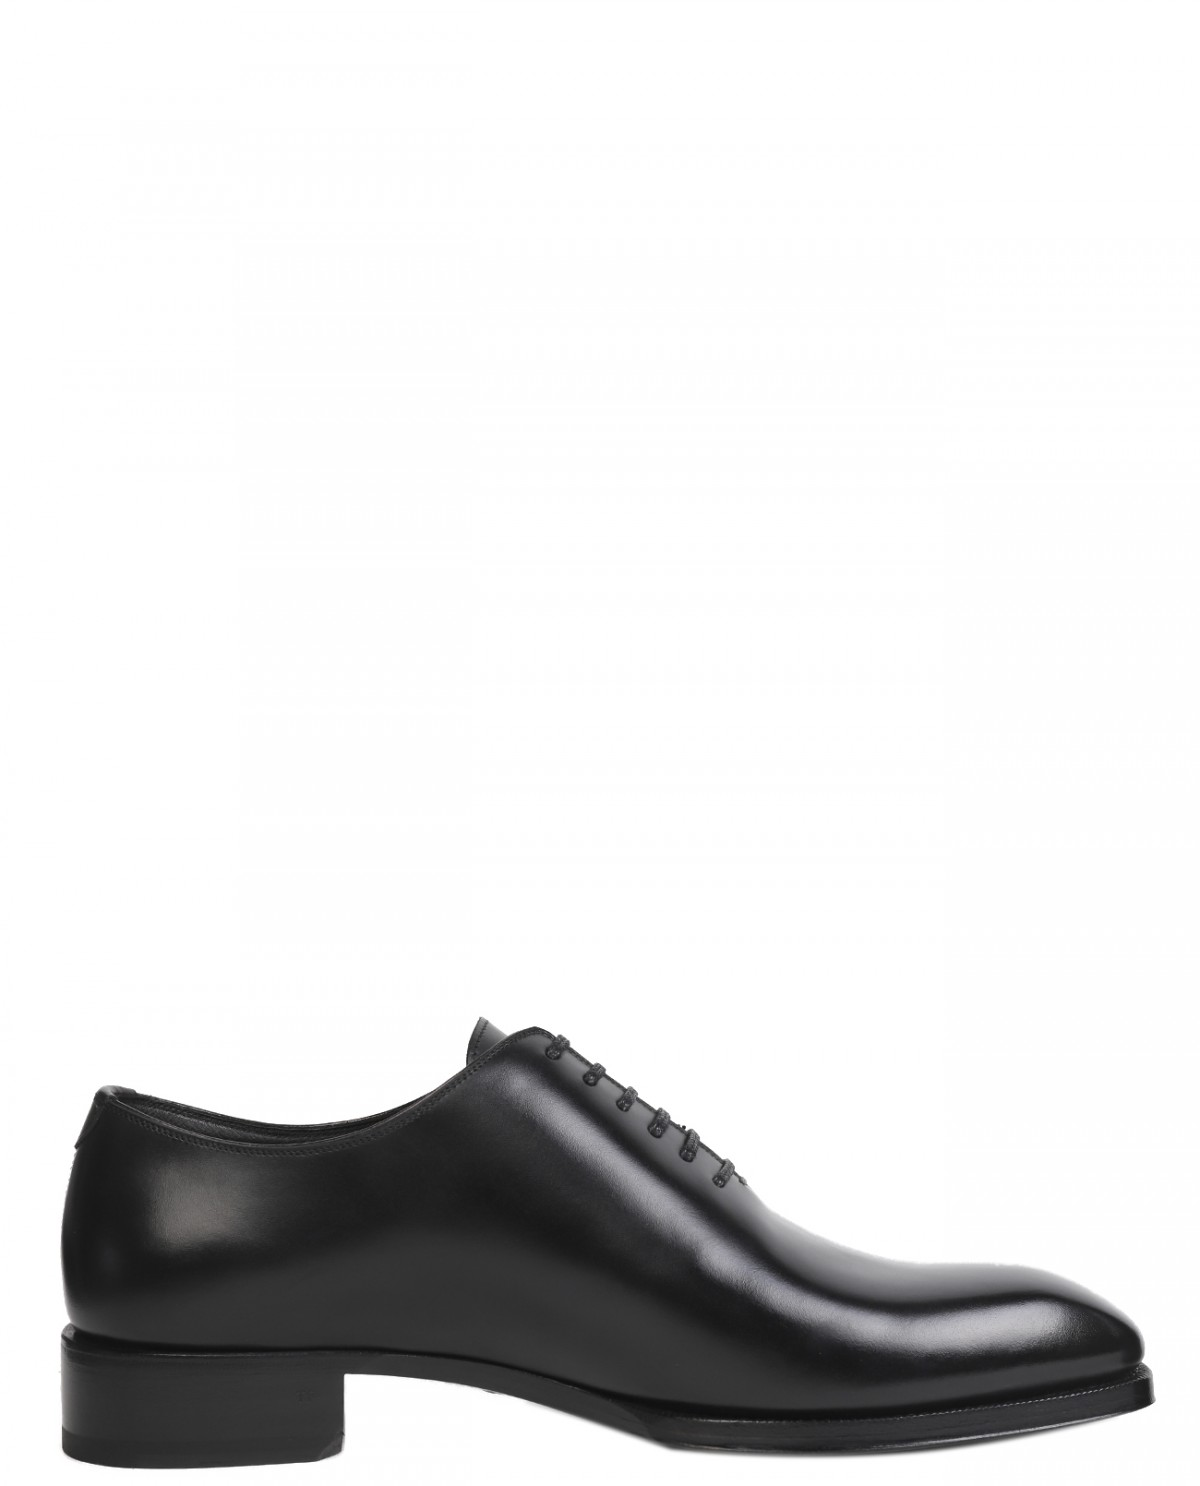 Tom Ford black lace-up shoes